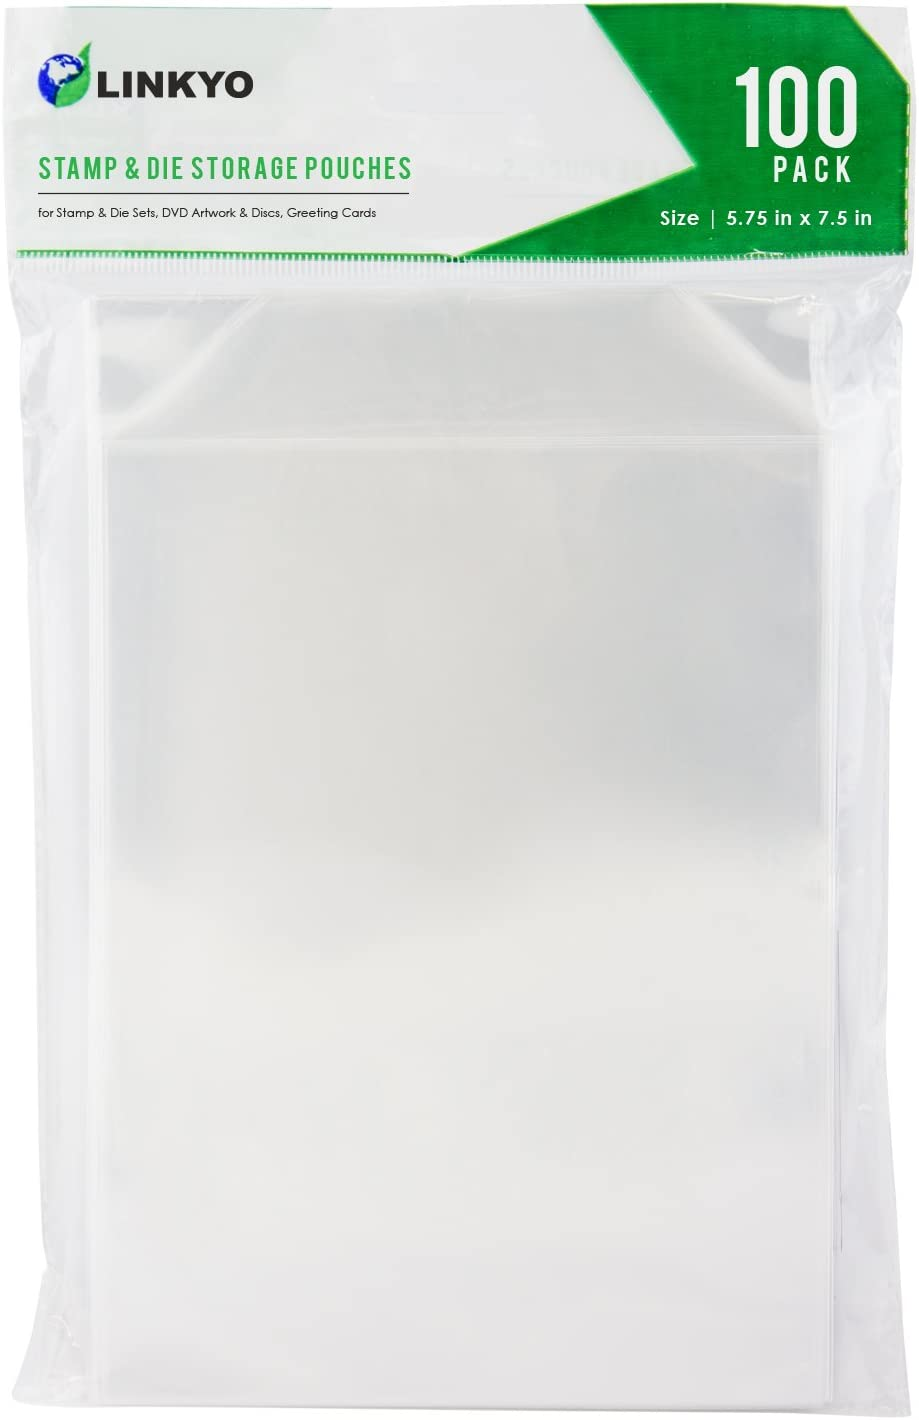 LINKYO Stamp and Die Storage Pockets, Set of 100, 5.75 inches by 7.5 inches